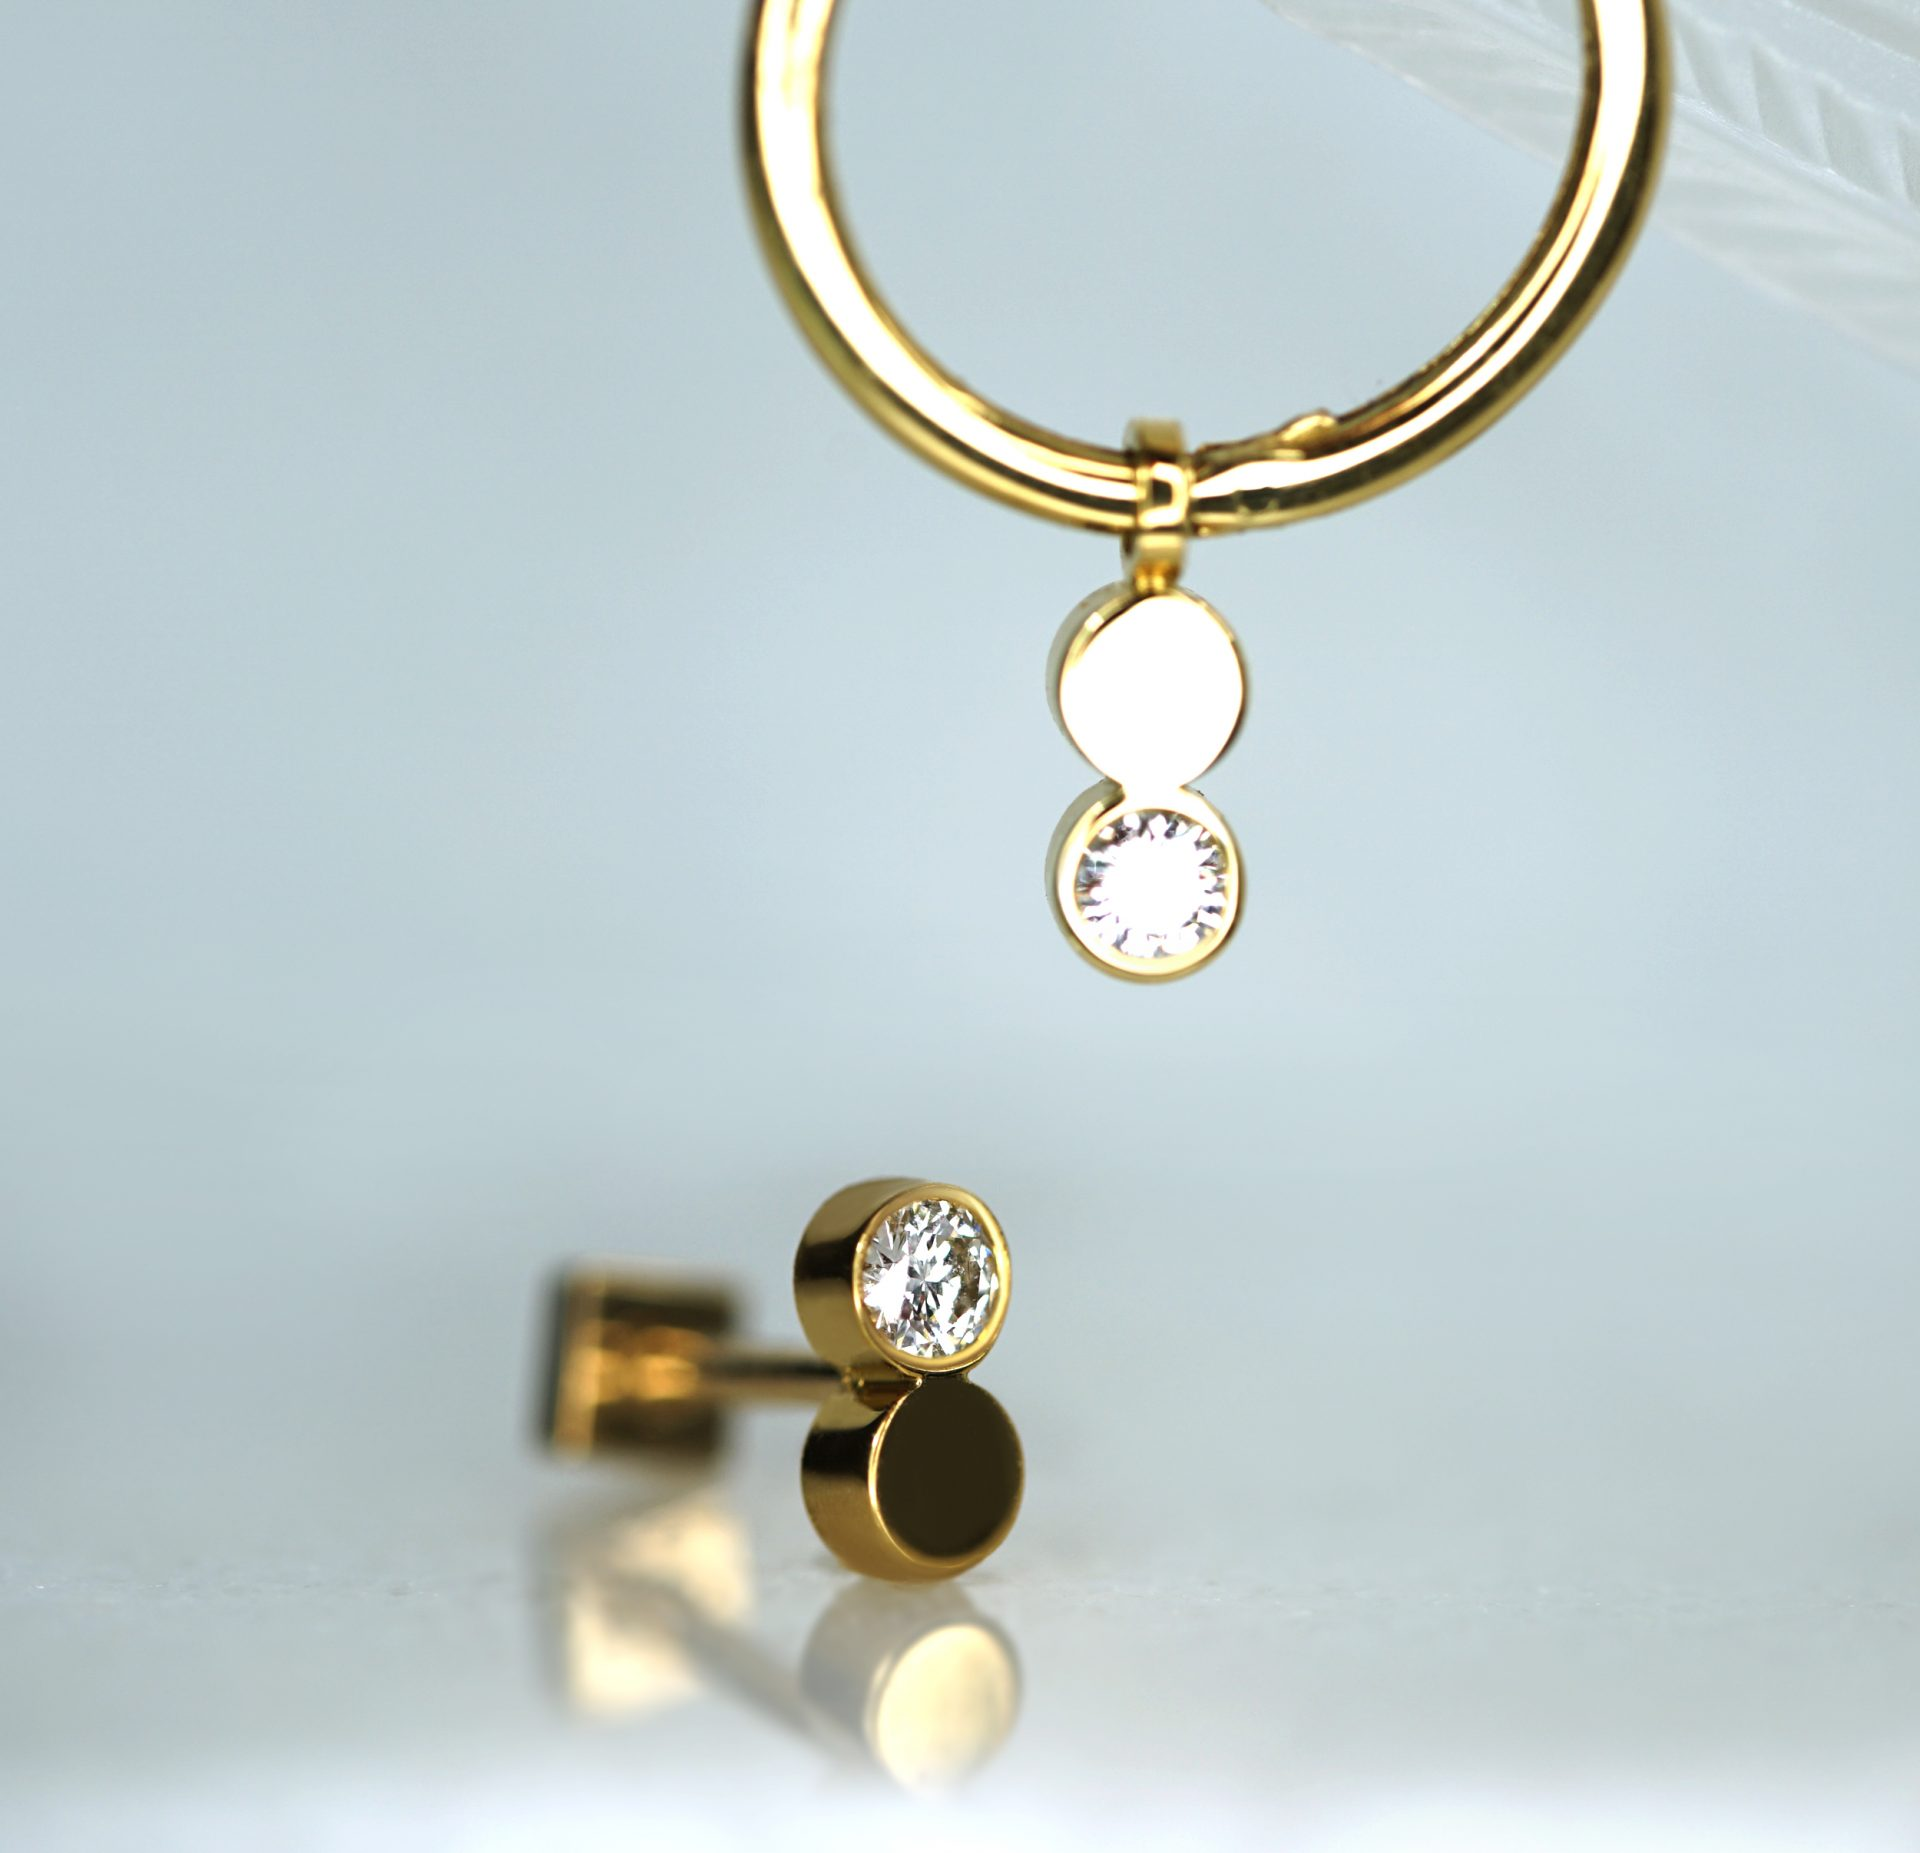 18k-solid-gold-yellow-gold-luxury-piercing-jewellery-lena-cohen-uk